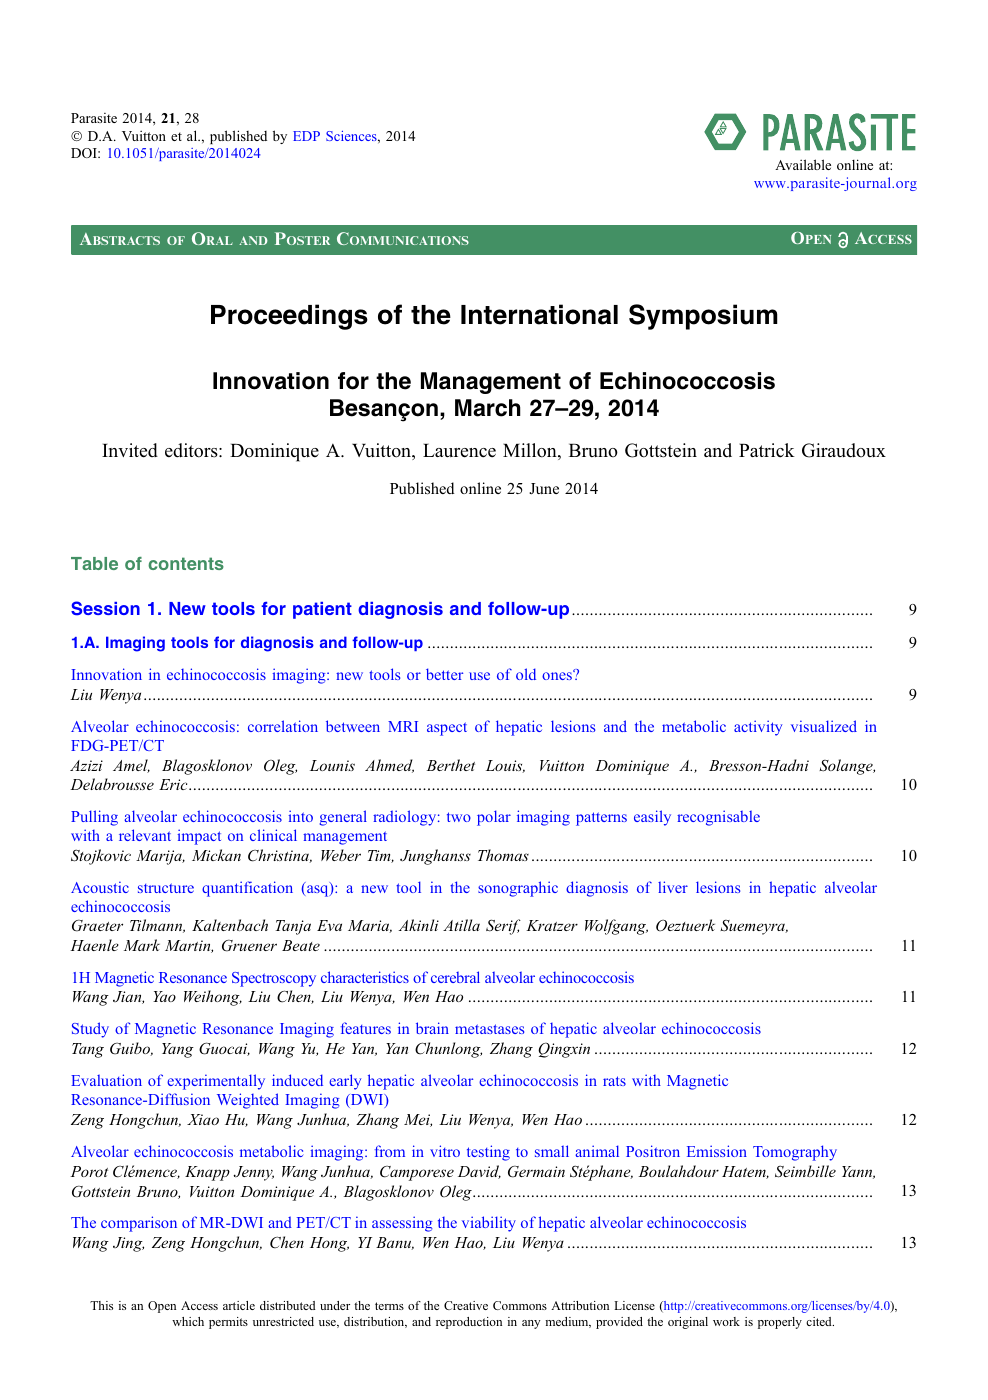 Proceedings of the International Symposium – topic of